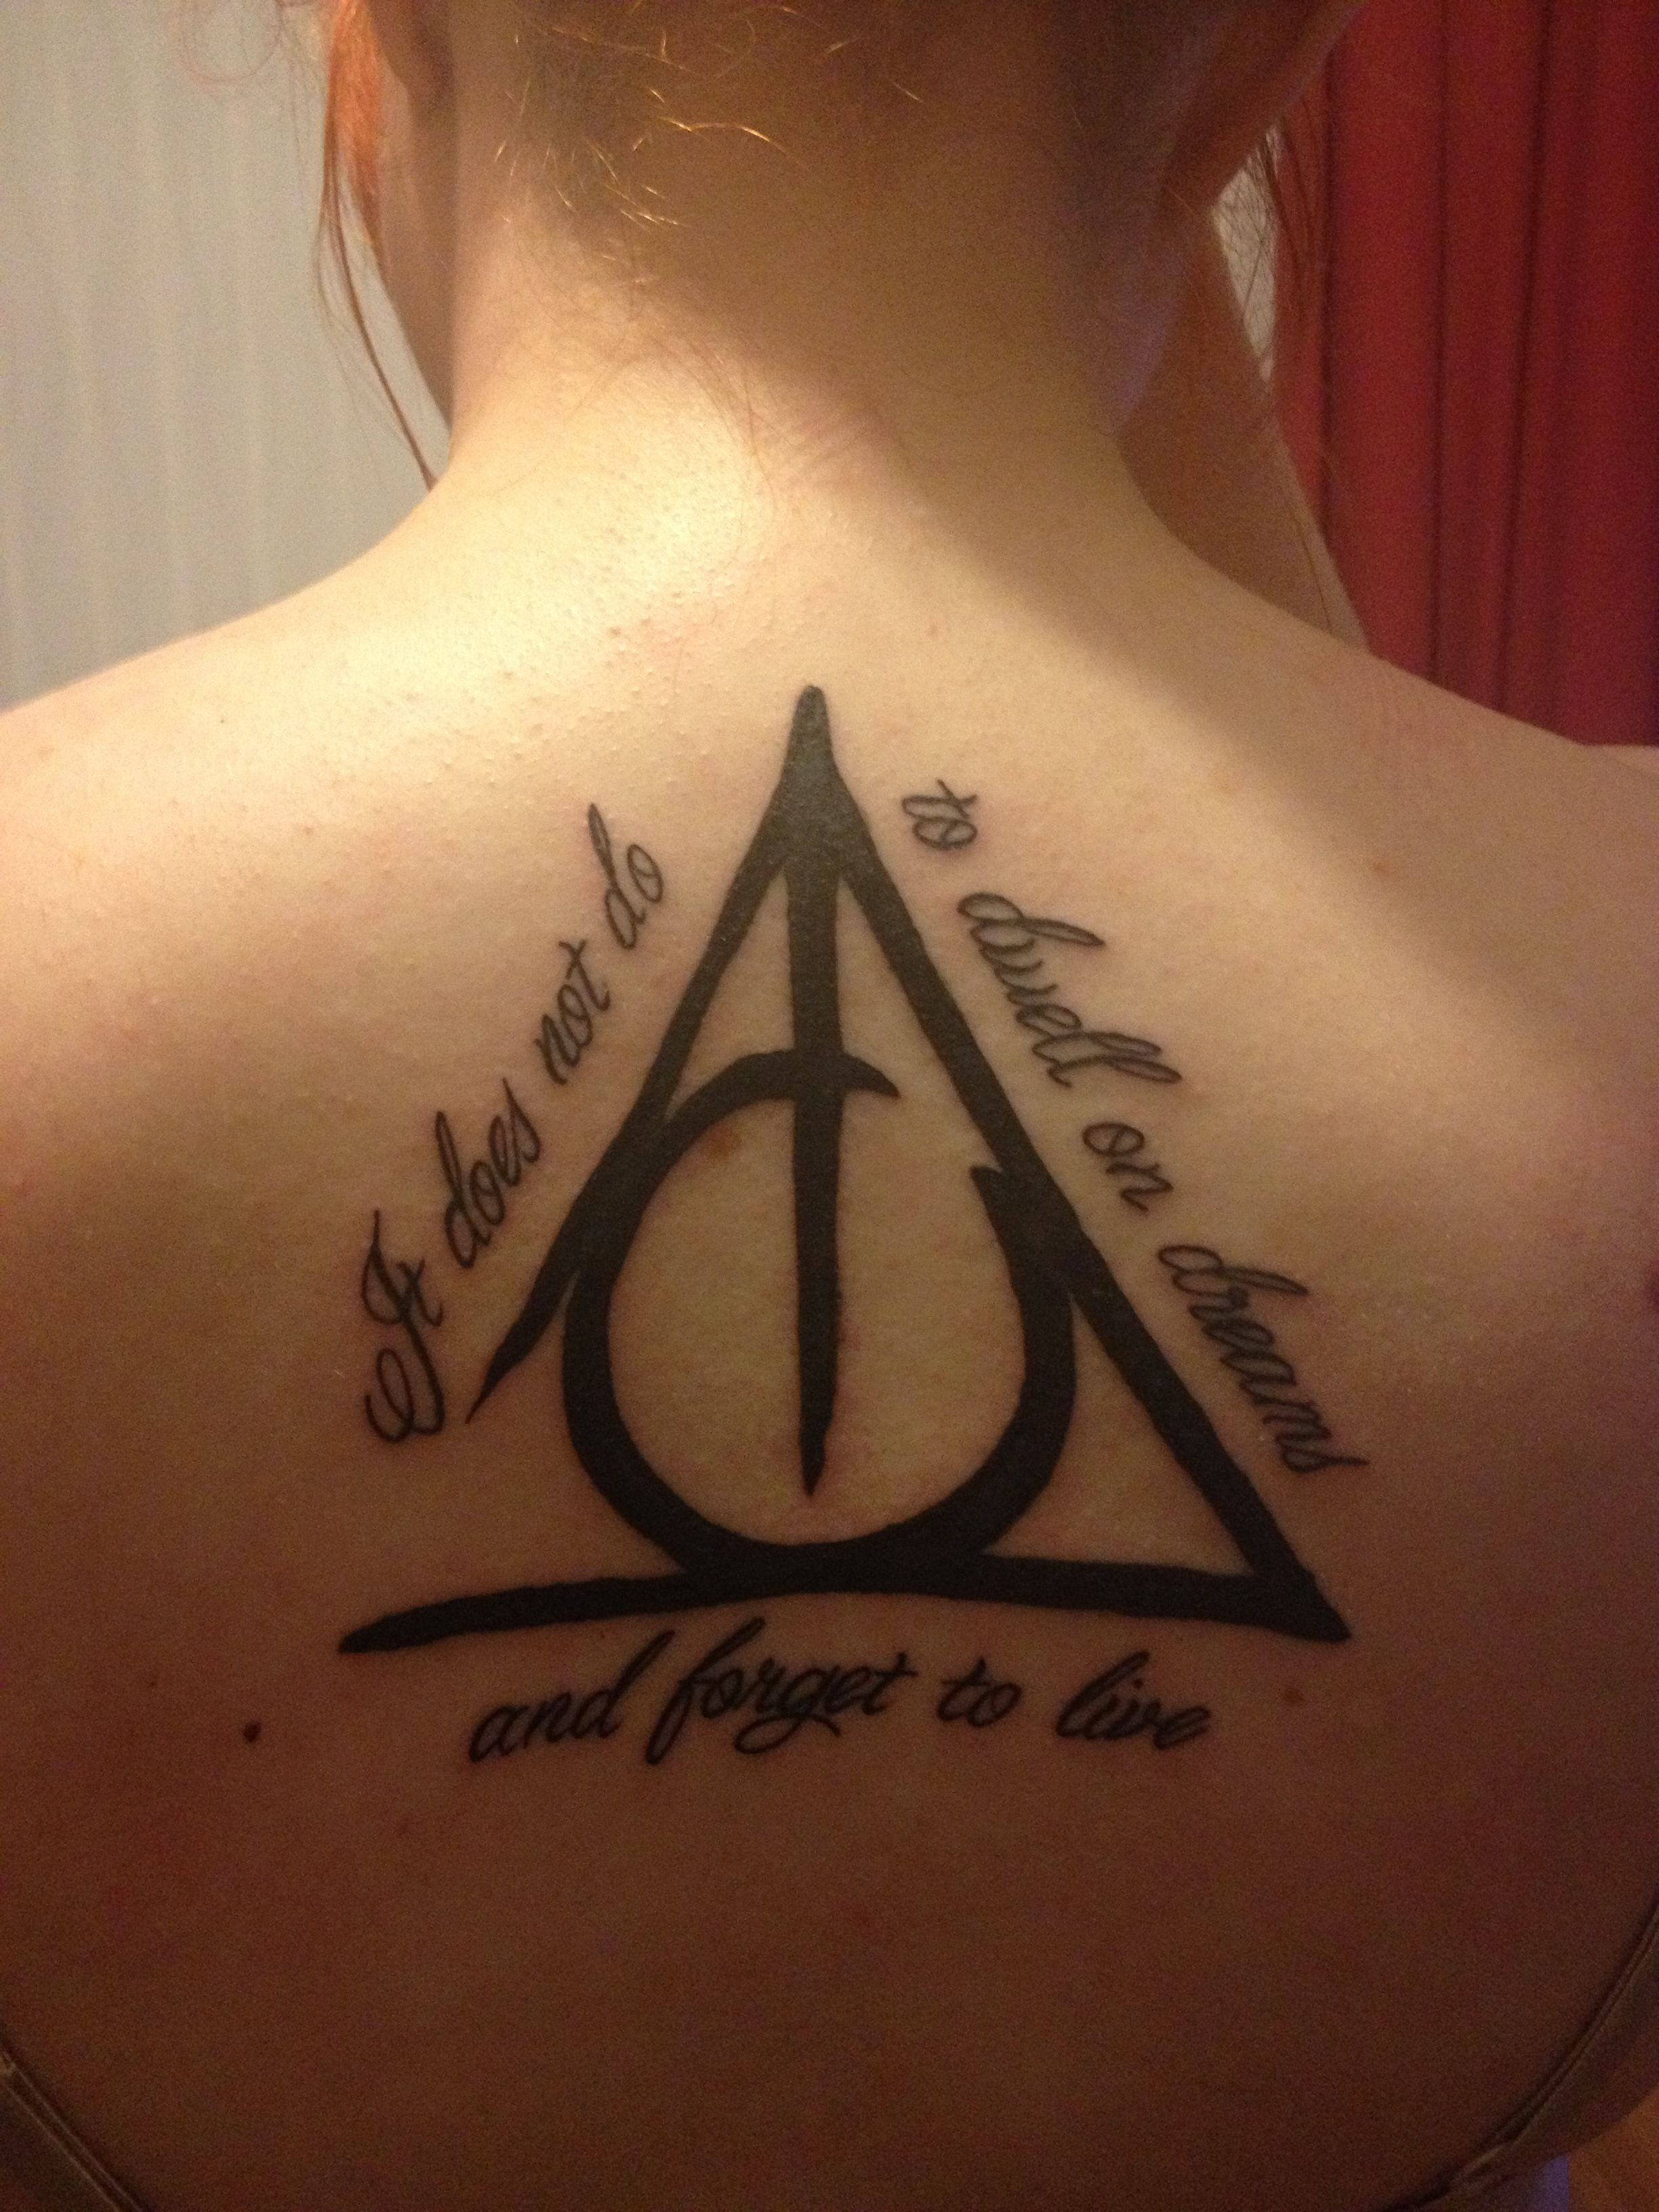 Maybe Not The Quote But Definitely The Three Brothers Symbol